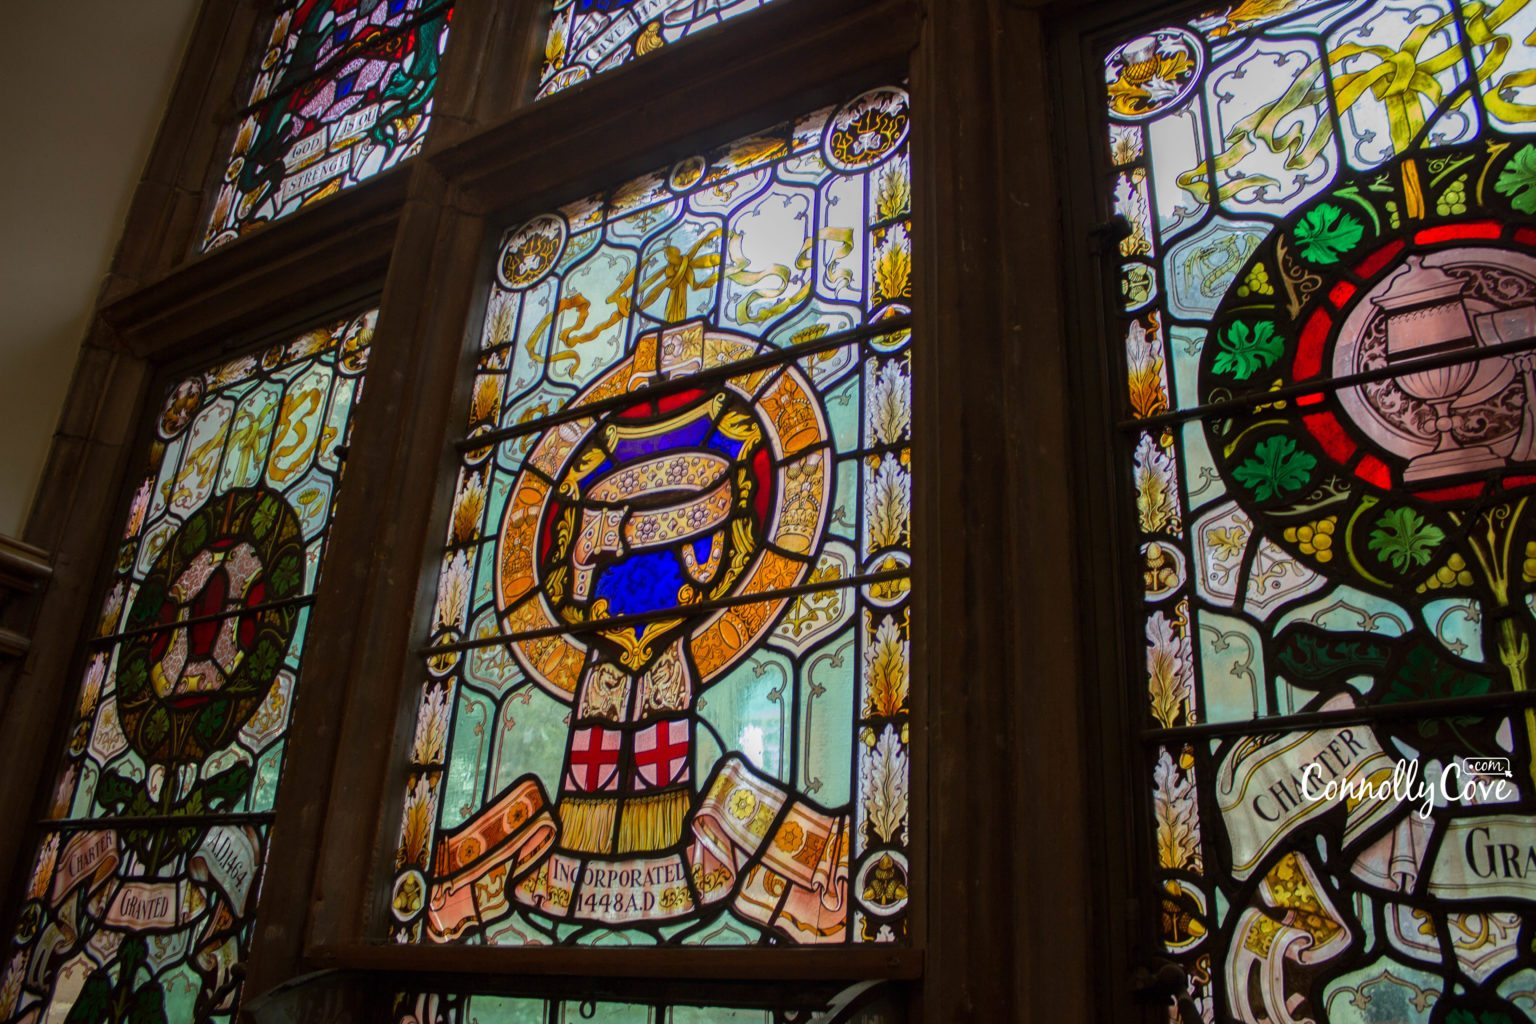 Stain Glass Windows - The Guildhall